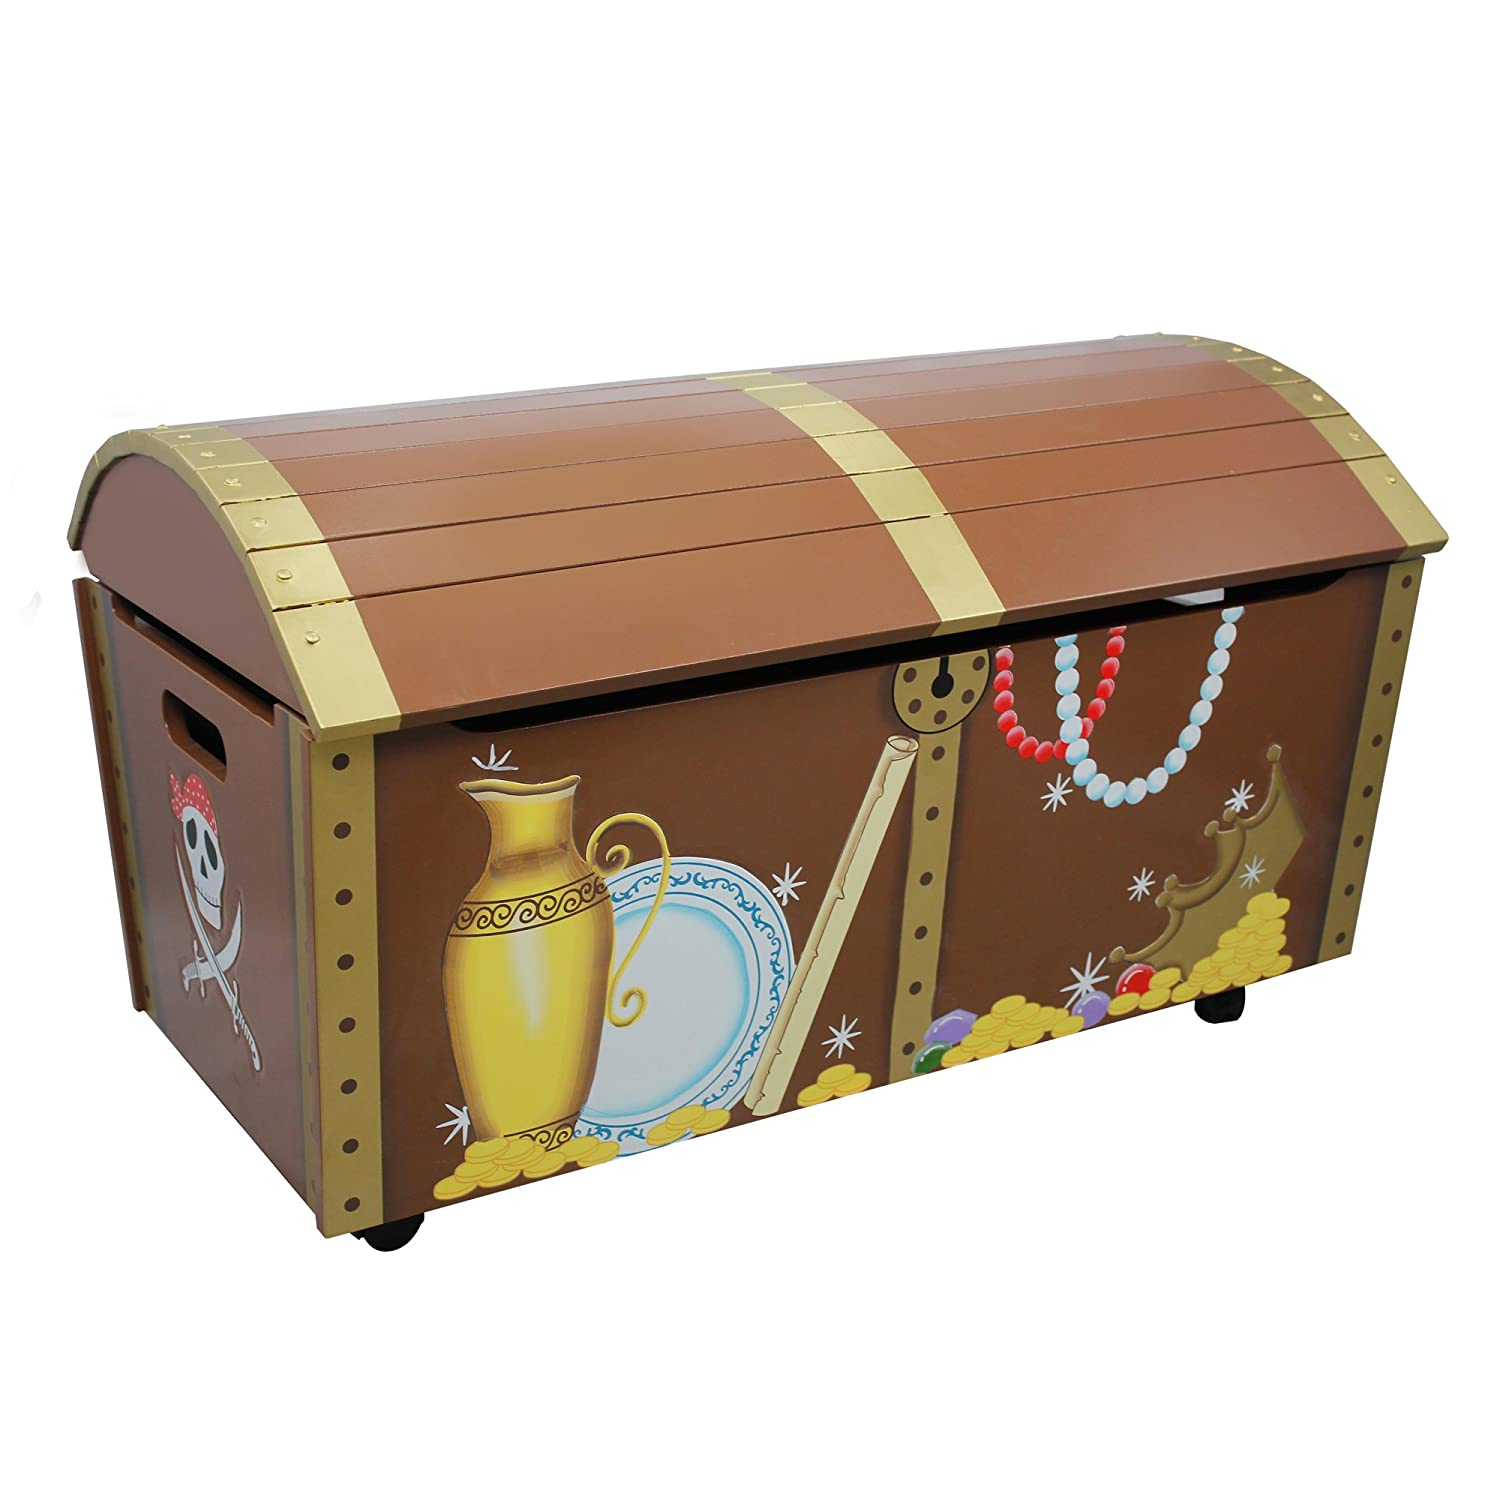 Genial Amazon.com: Fantasy Fields Pirate Island Thematic Kids Wooden Toy Chest  With Safety Hinges | Imagination Inspiring Hand Crafted U0026 Hand Painted  Details ...